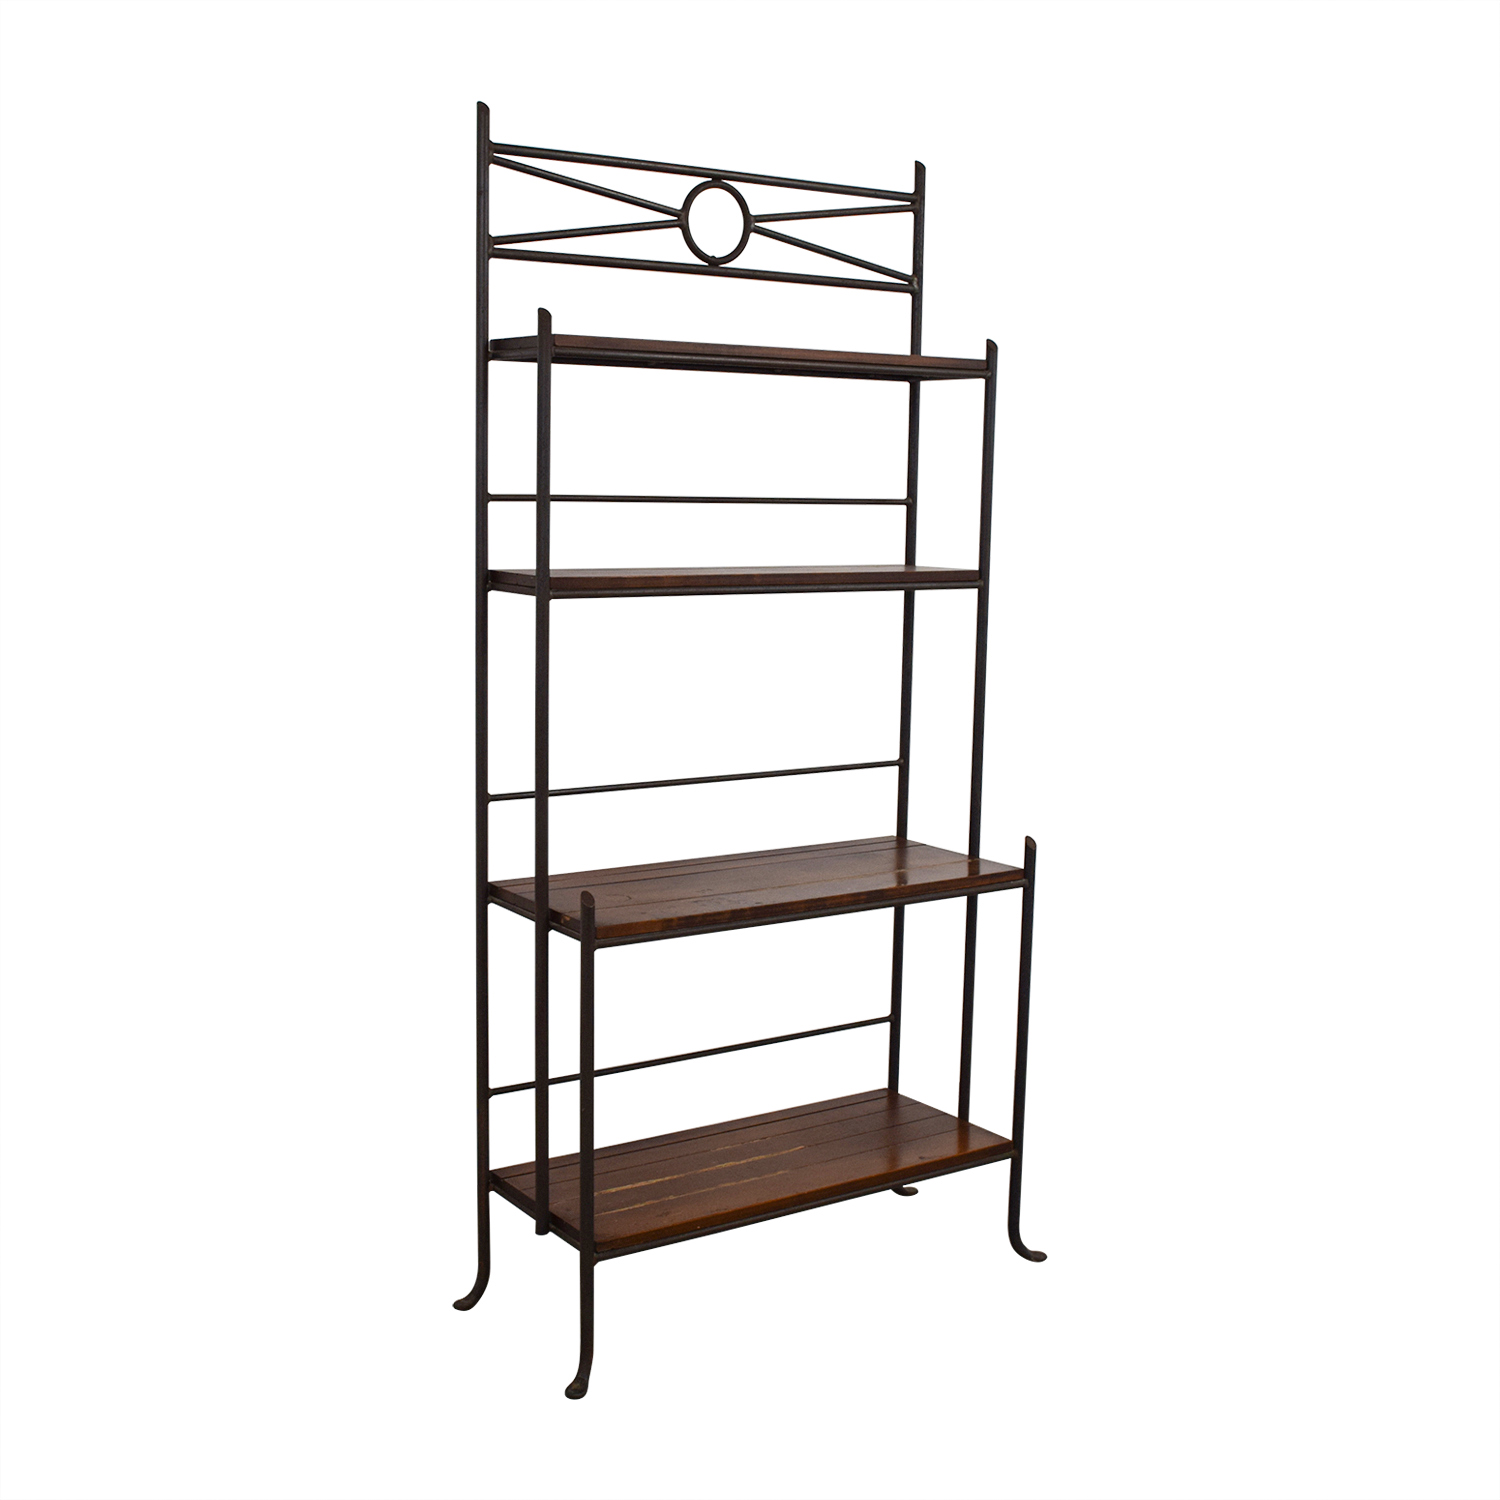 Crate & Barrel Crate & Barrel Wood and Metal Book Case Storage